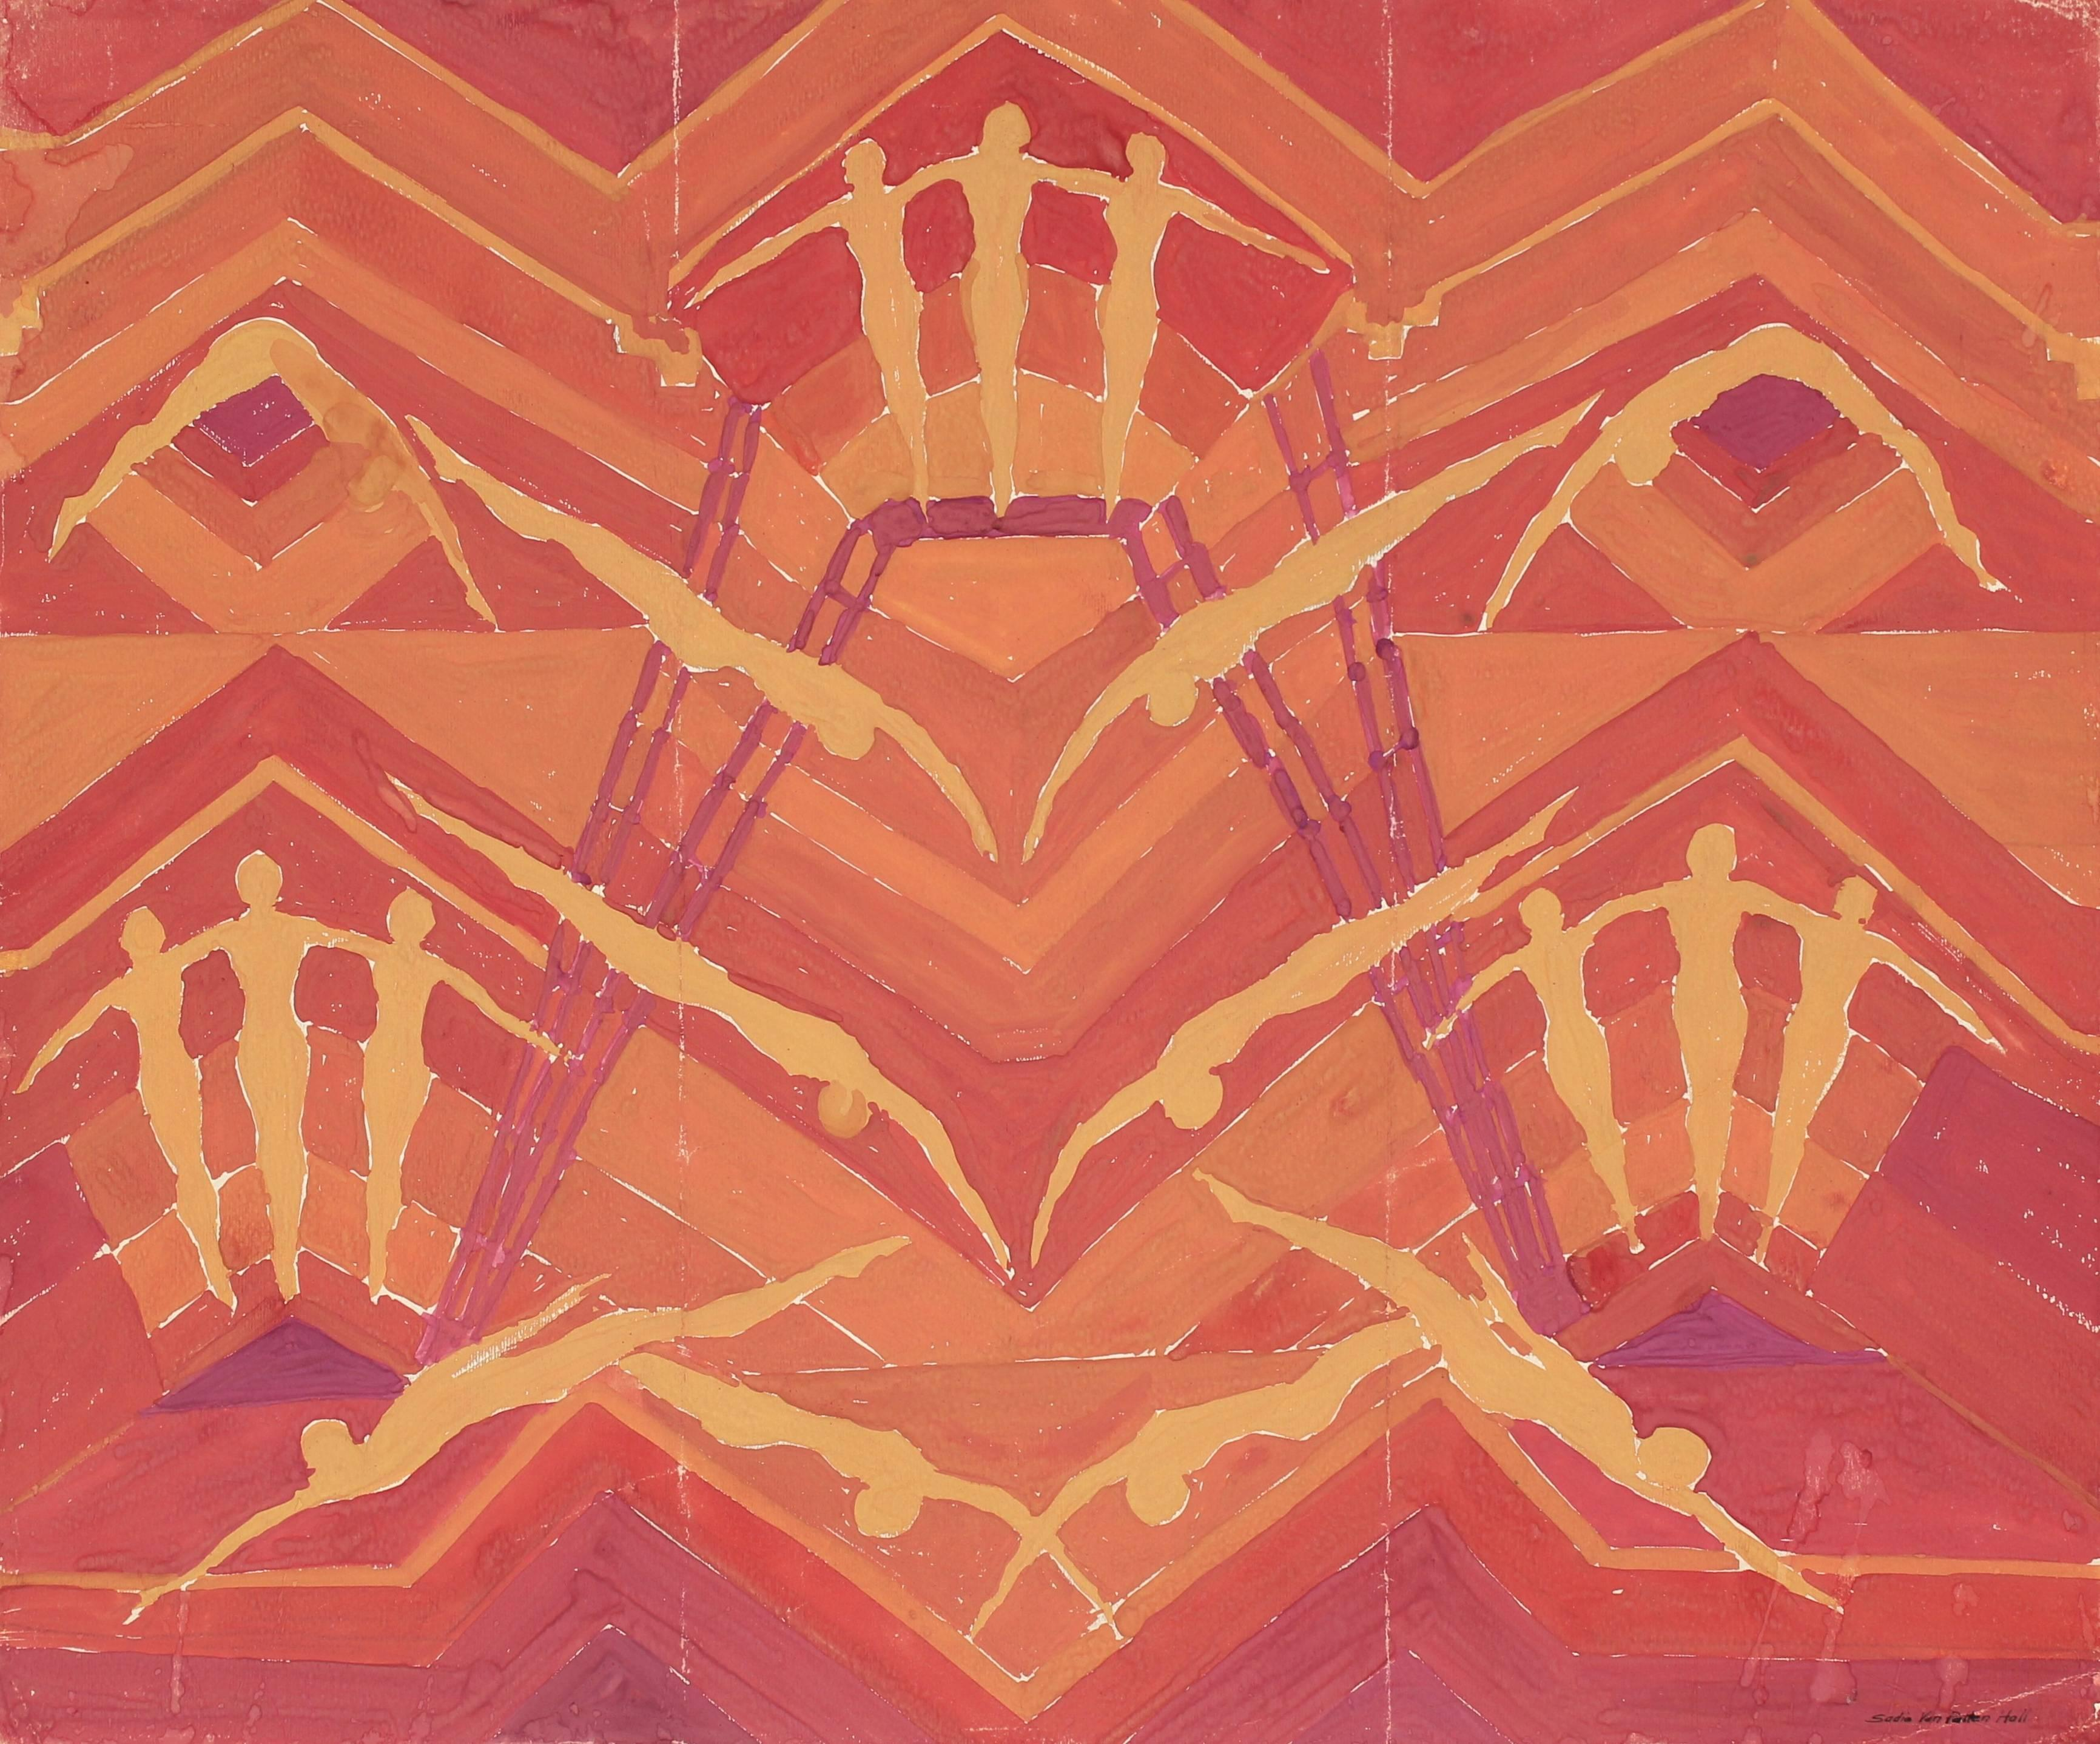 Abstract with Swimmers in Warm Tones, Gouache Painting, Circa 1950s